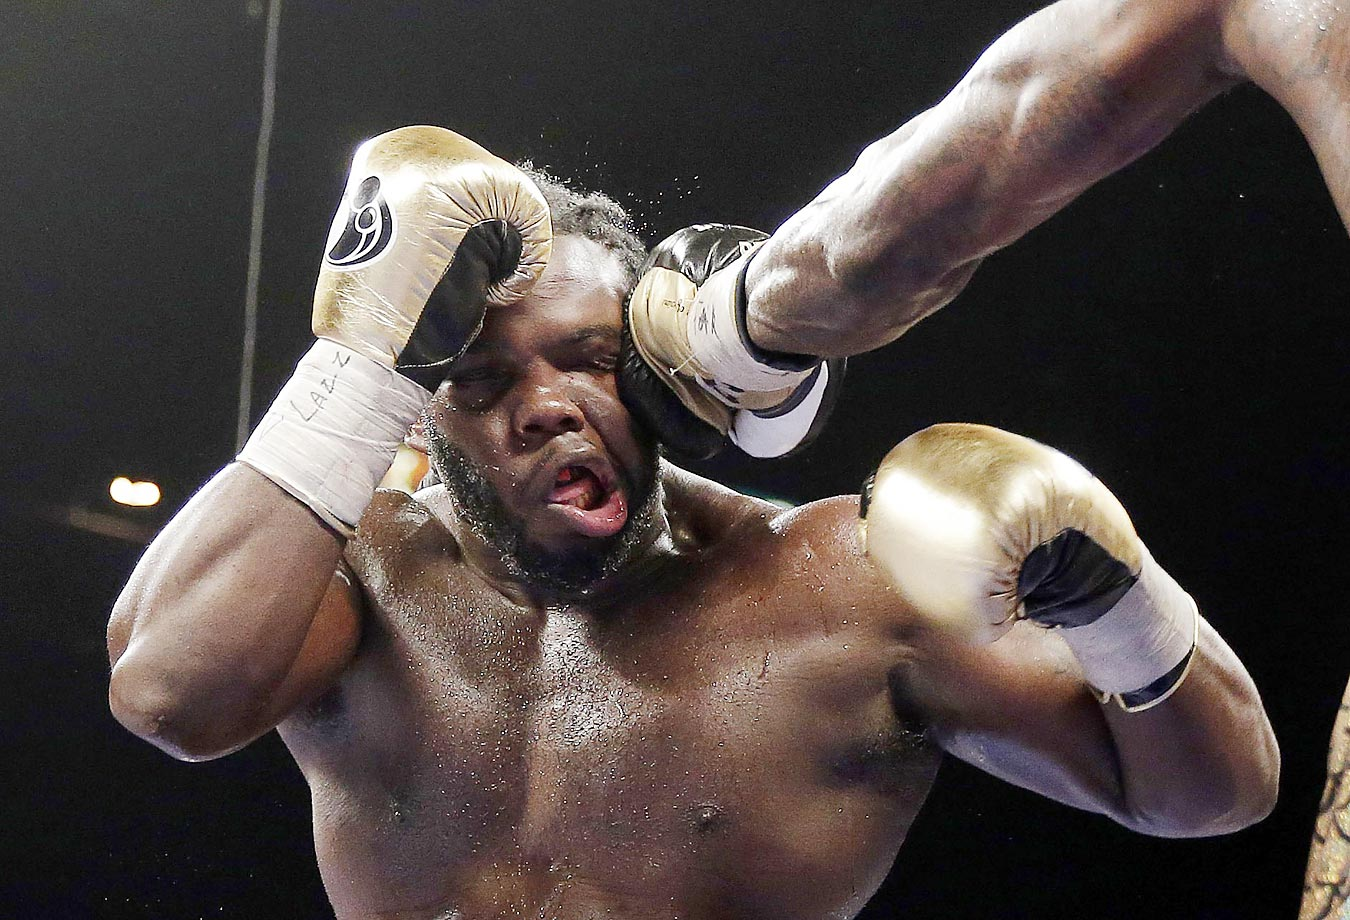 Bermane Stiverne takes a punch from Deontay Wilder during their WBC heavyweight championship match in Las Vegas. Wilder won by unanimous decision.